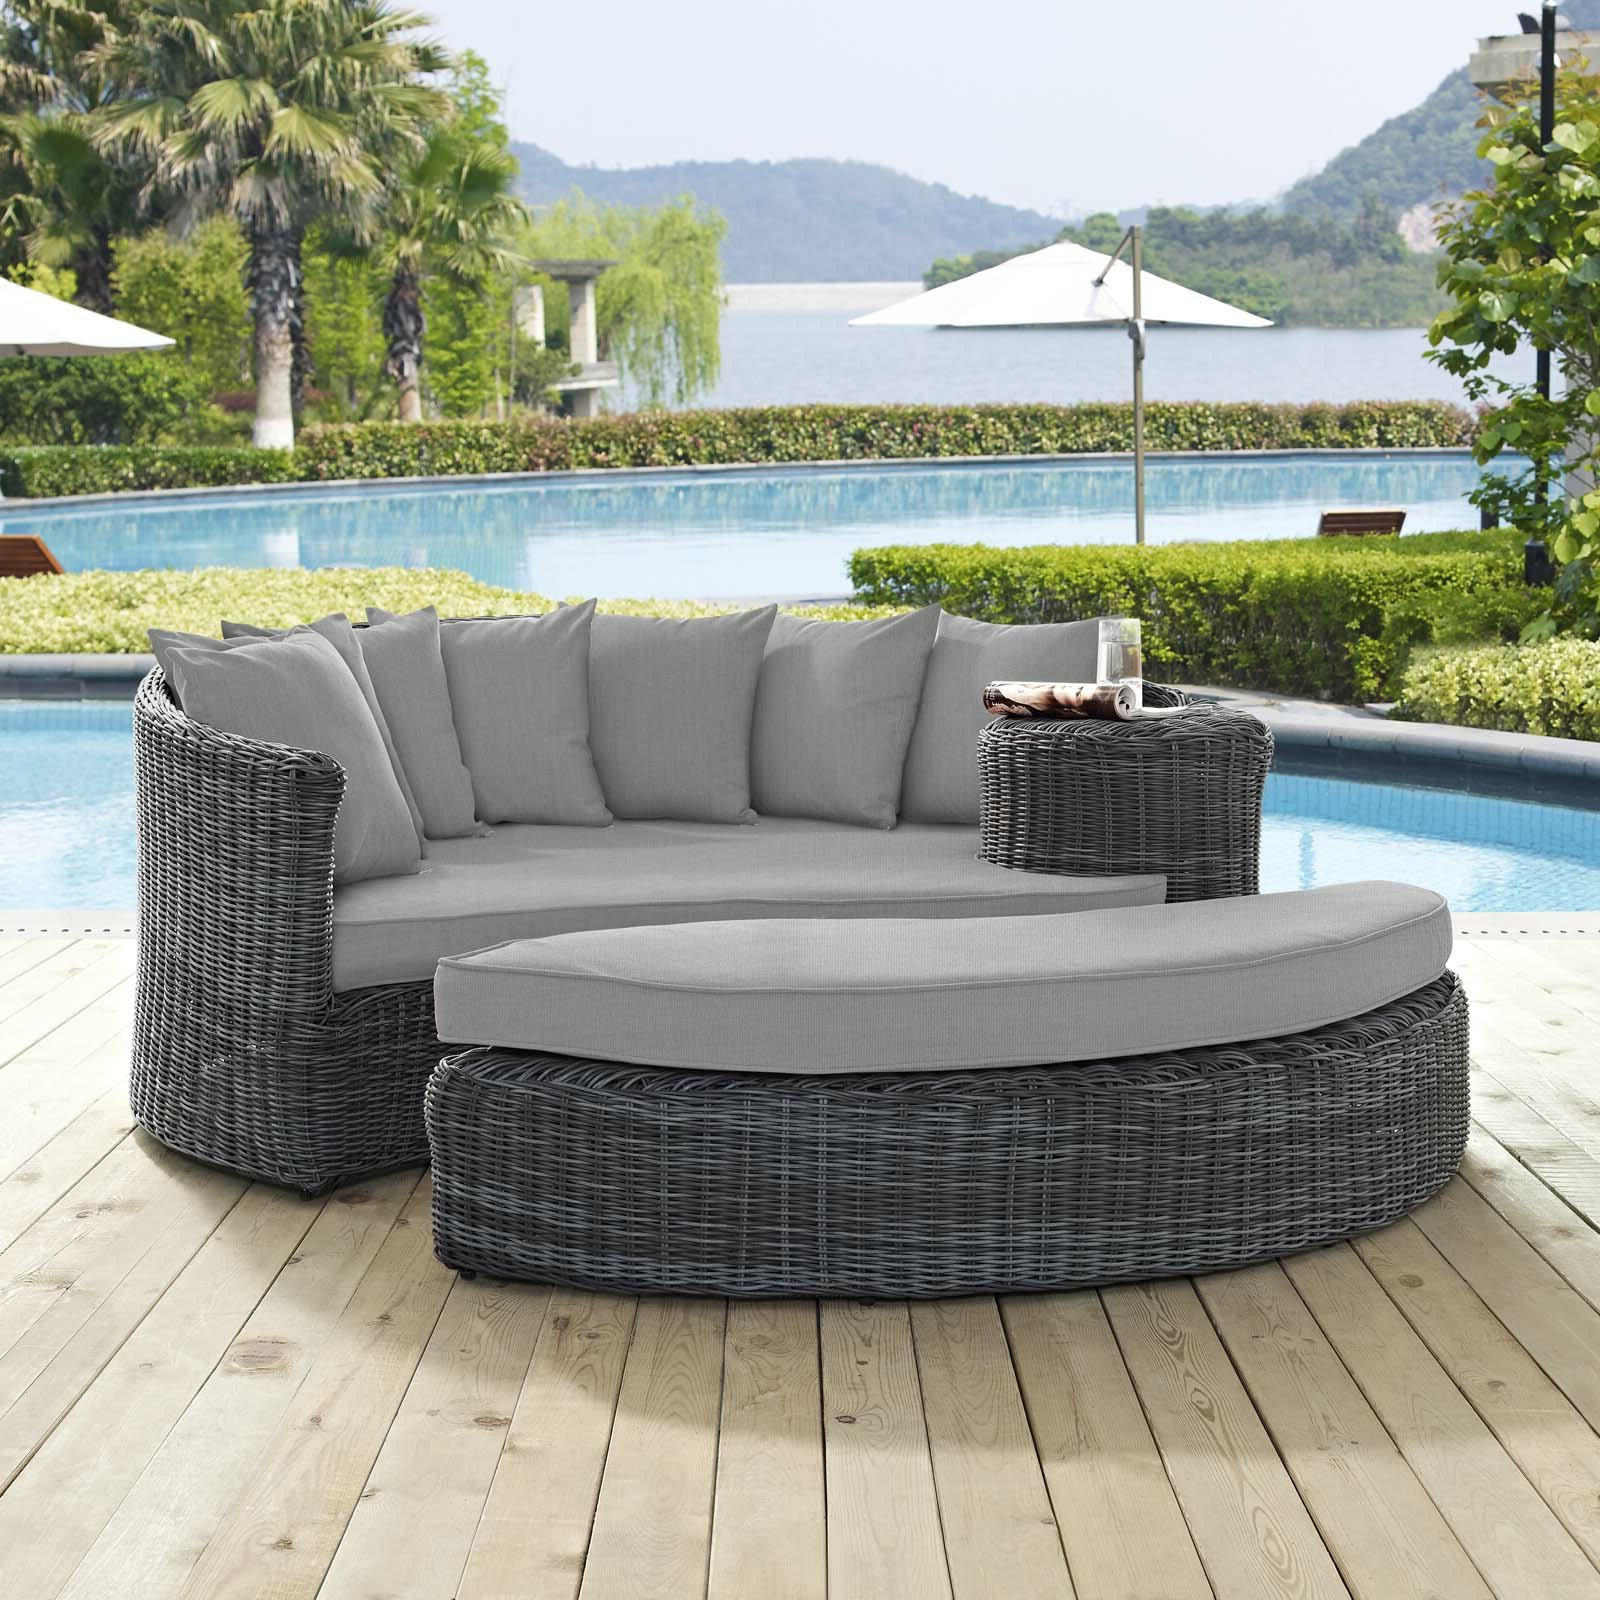 Falmouth Patio Daybeds With Cushions With Regard To 2019 Keiran Patio Daybed With Cushions (View 15 of 20)